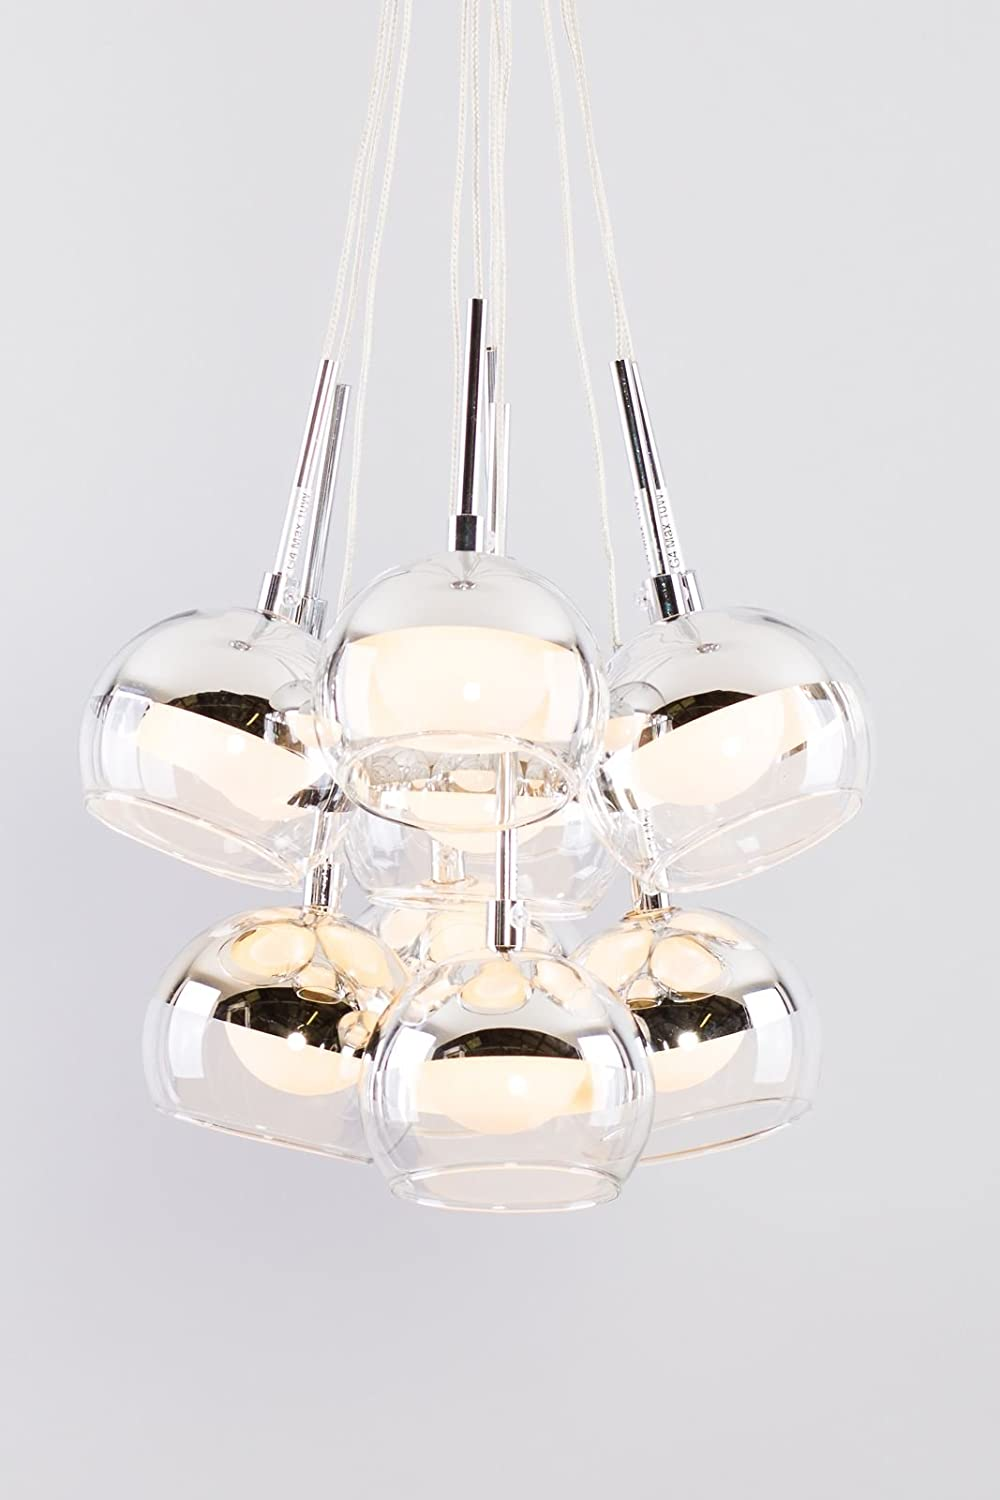 Glass Dome Contemporary Design With Chrome Effect Eleven Light Pendant Clear Wire Ceiling Ideal For Living Room Kids Dining